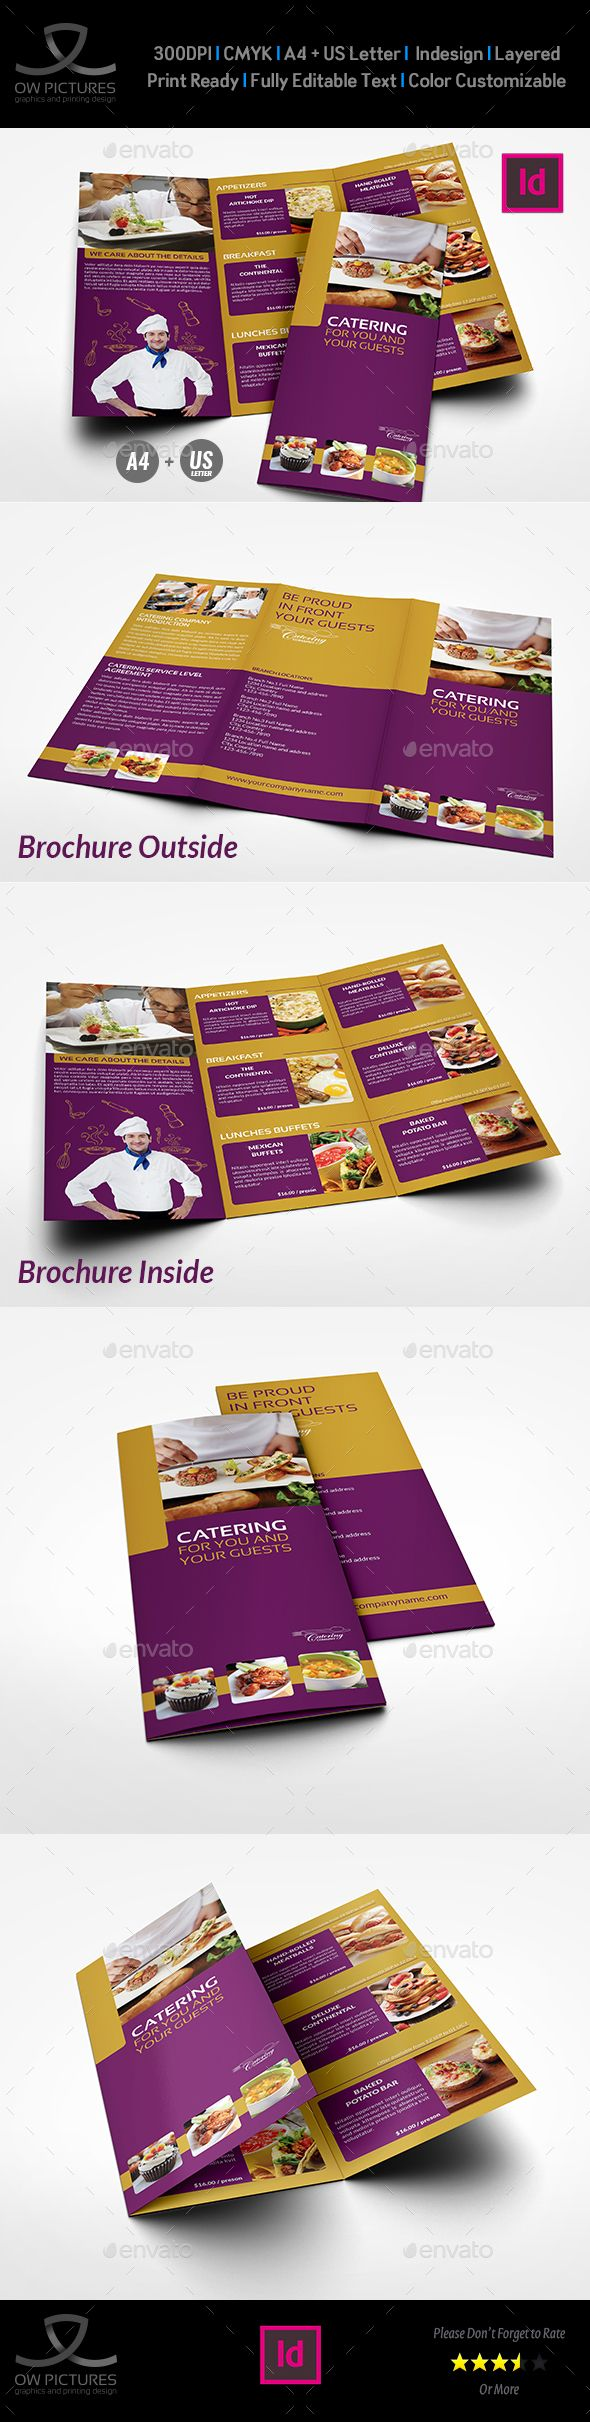 Catering TriFold Brochure Template Pinterest Brochure Template - Catering brochure templates